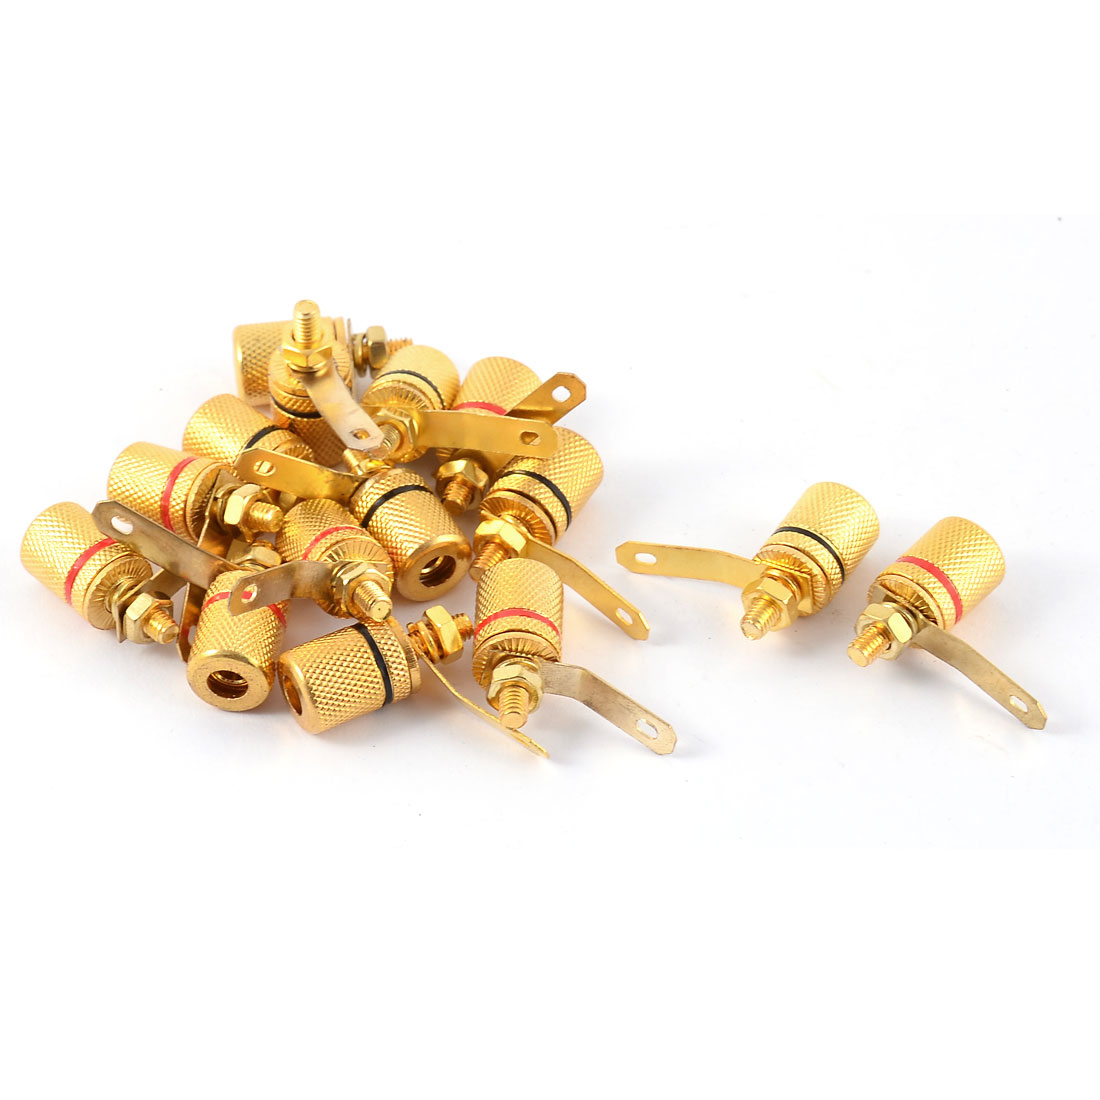 15pcs Audio Amplifier Terminal 4mm Female Banana Binding Post Socket Coupler Apapter